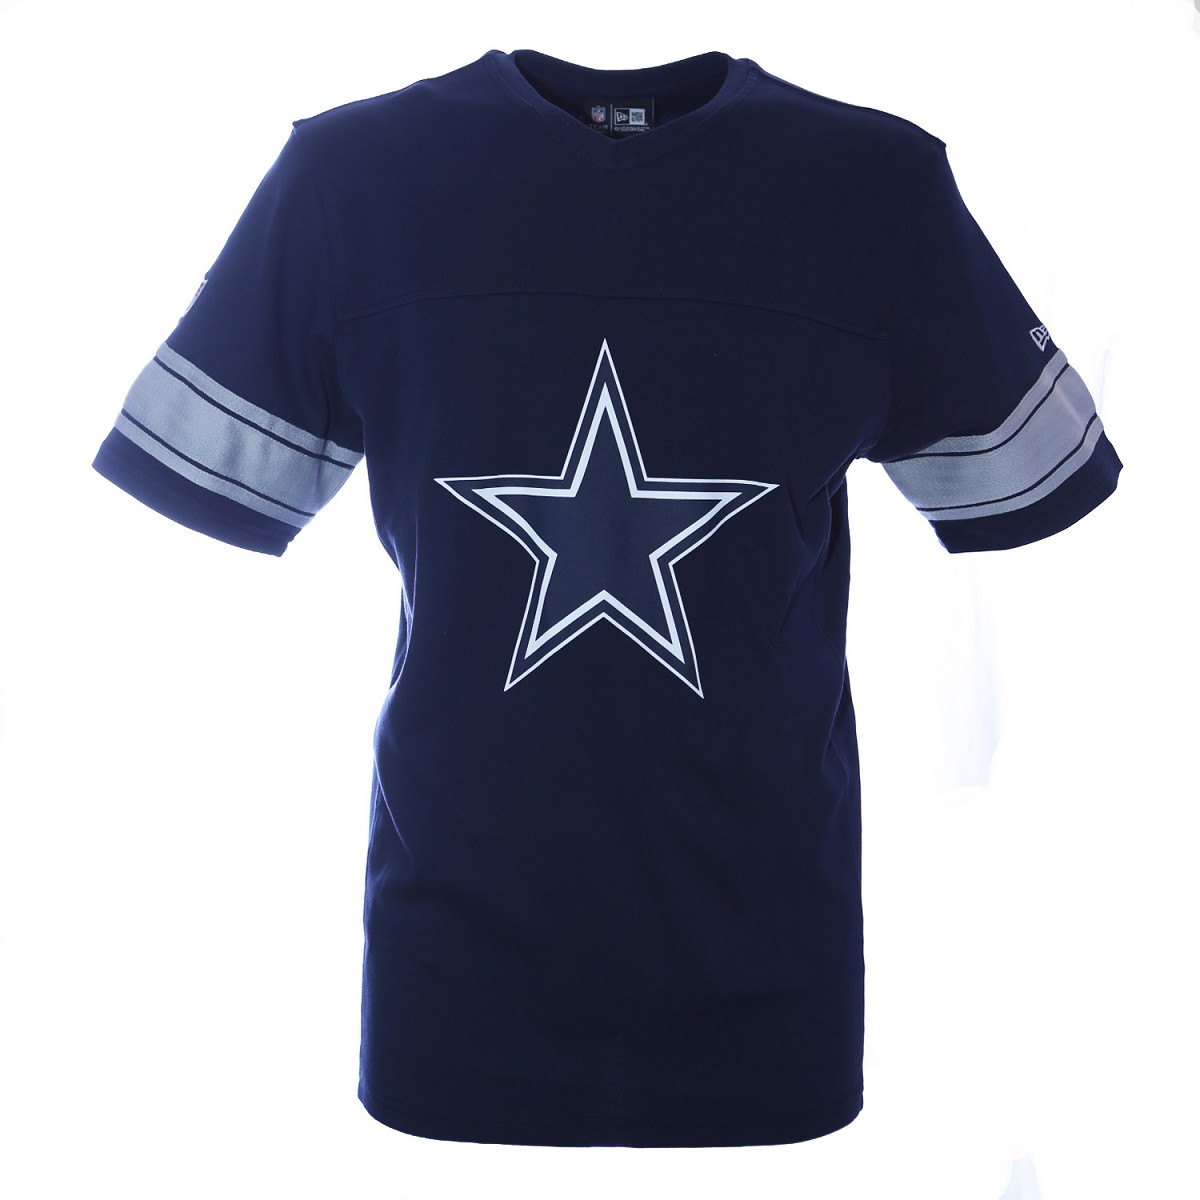 TSHIRT NEW ERA SB50 NFL V NECK DALLAS COWBOYS JERSEYS APPAREL NFL NEW ERA